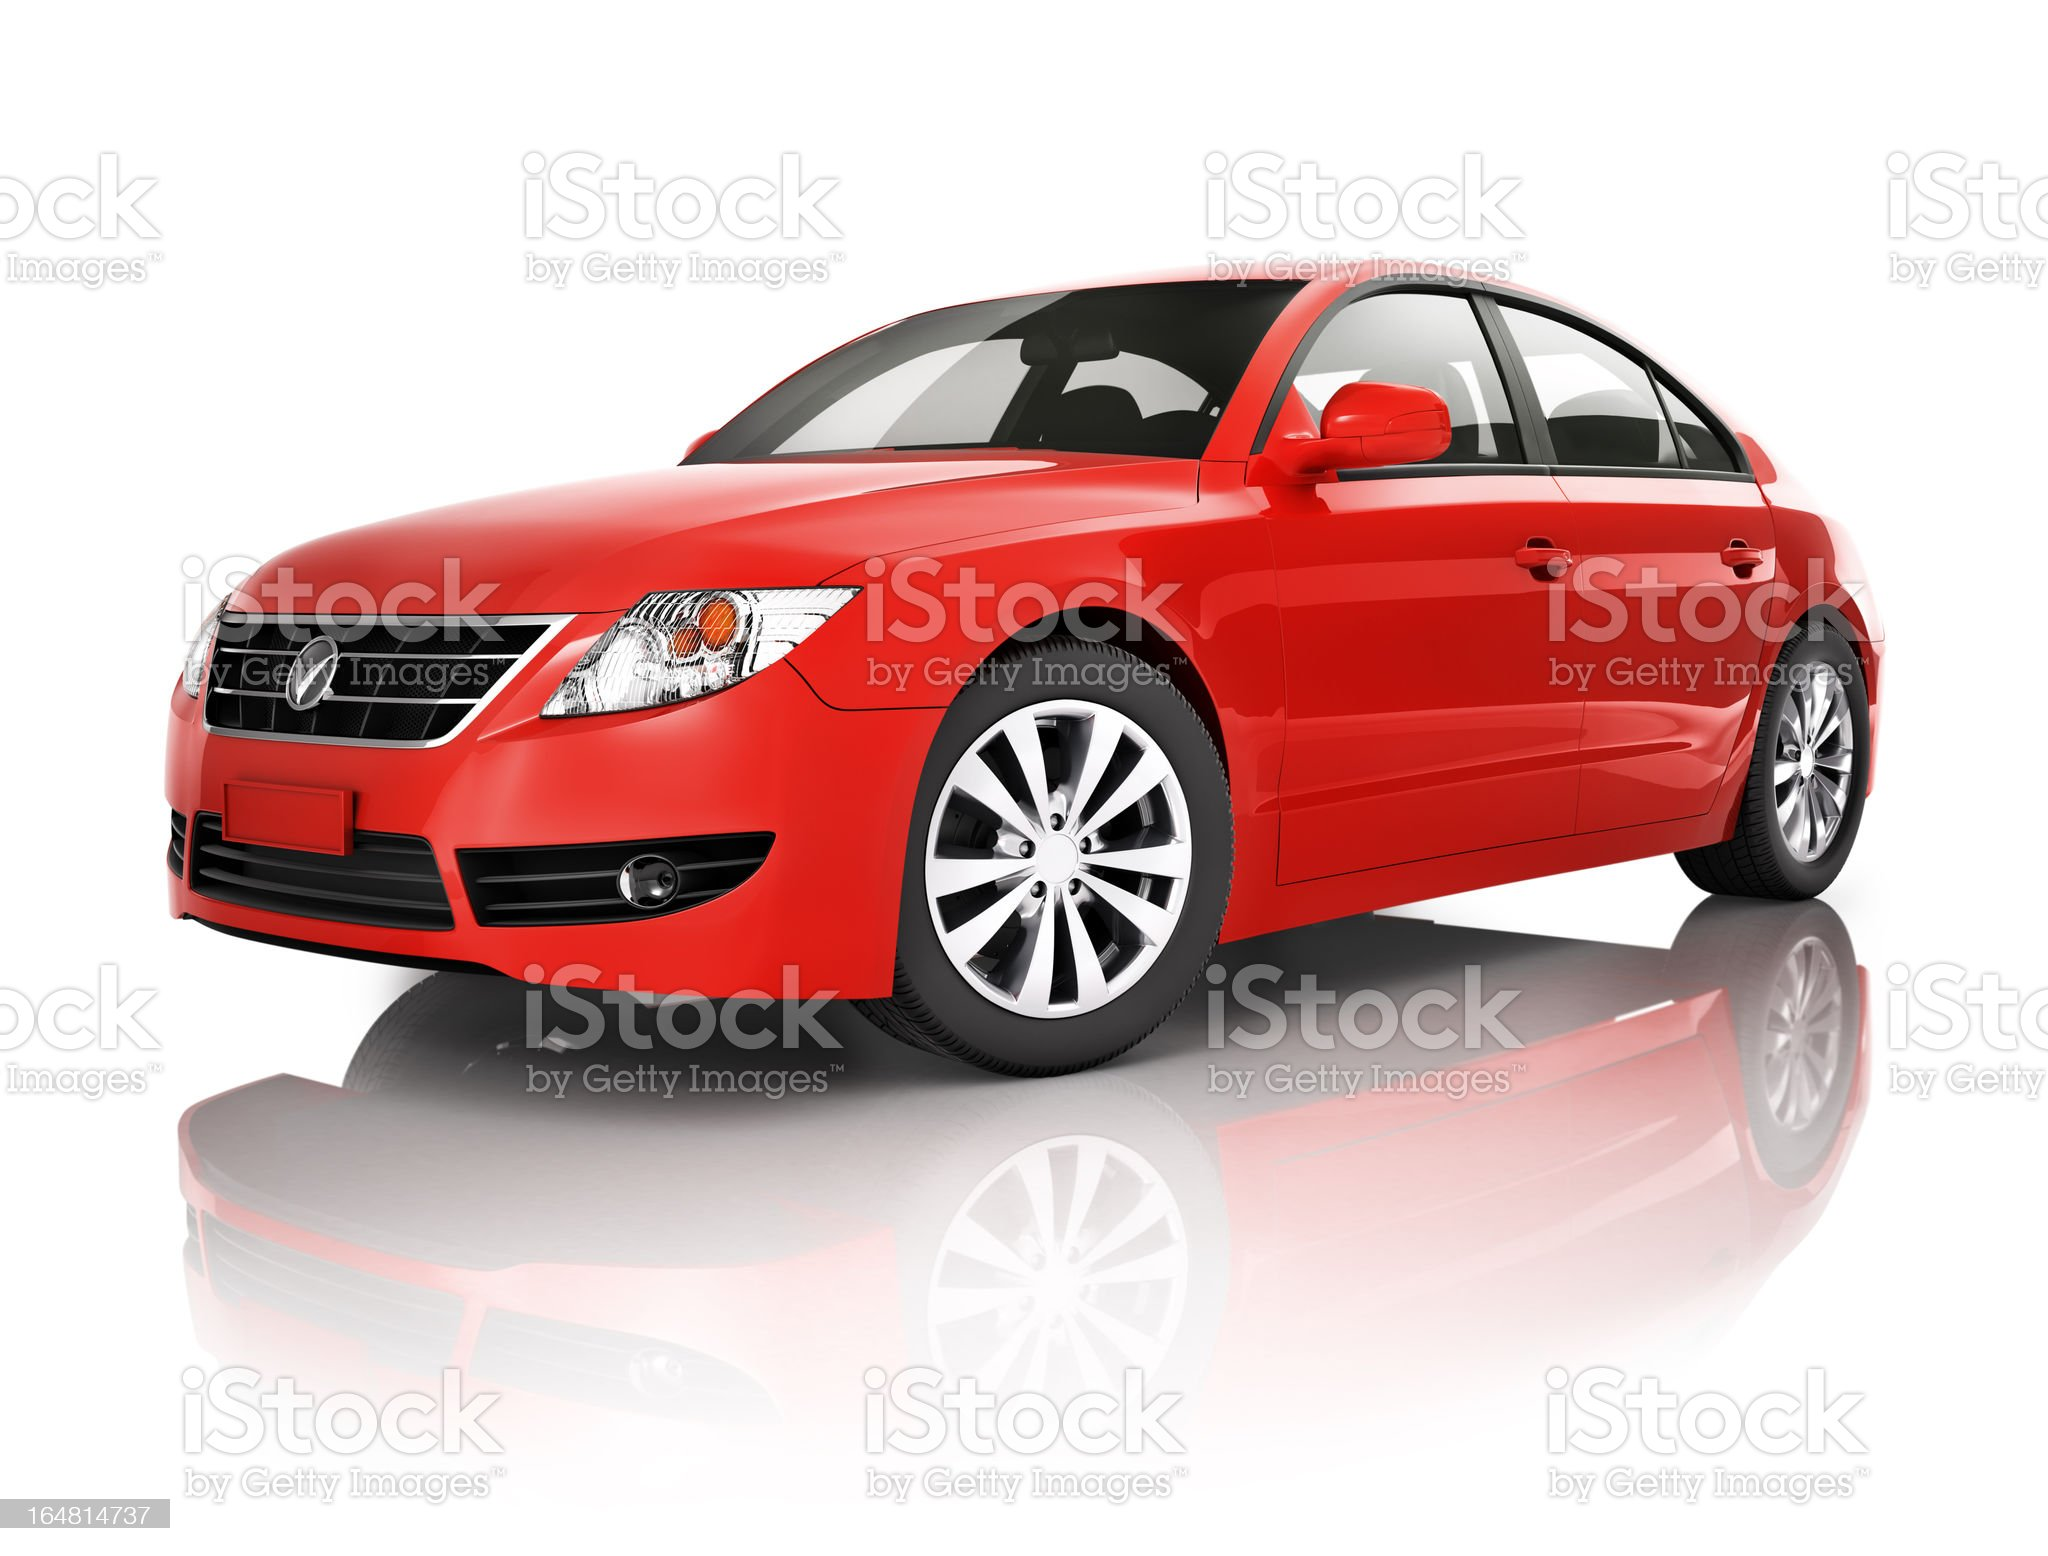 Red elegant sedan car royalty-free stock photo